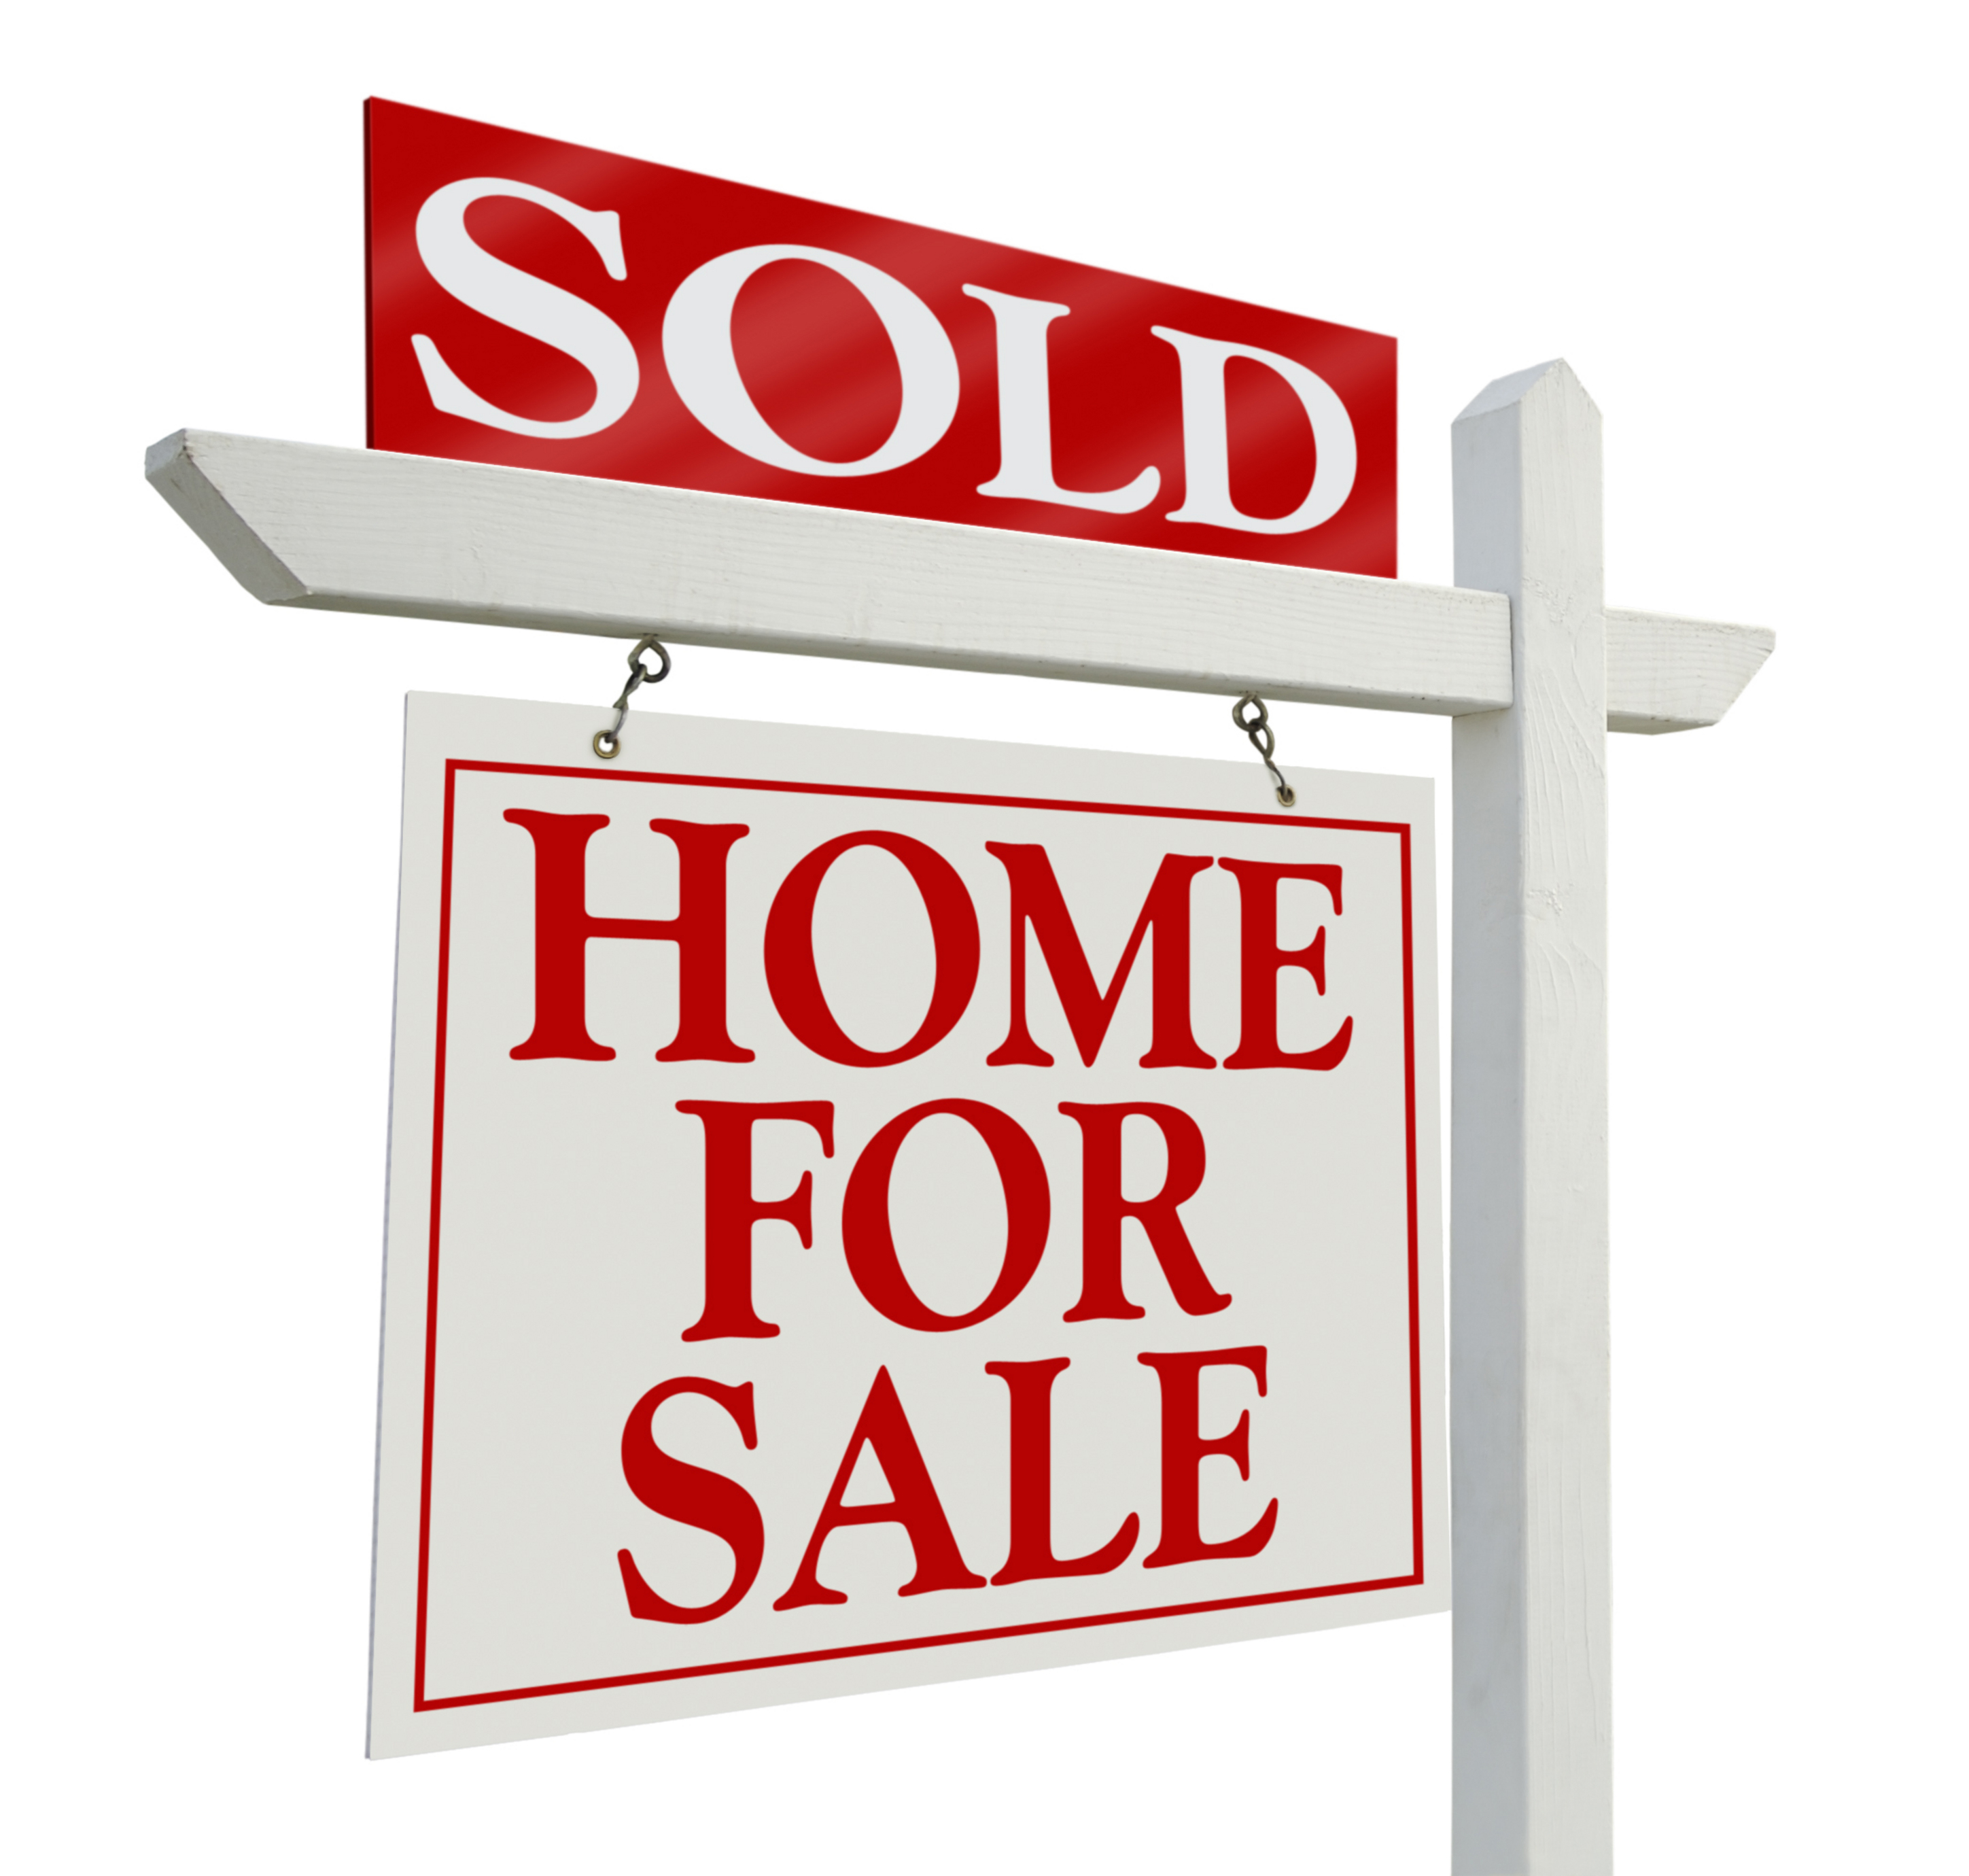 Sold Sign Clipart & Sold Sign Clip Art Images.